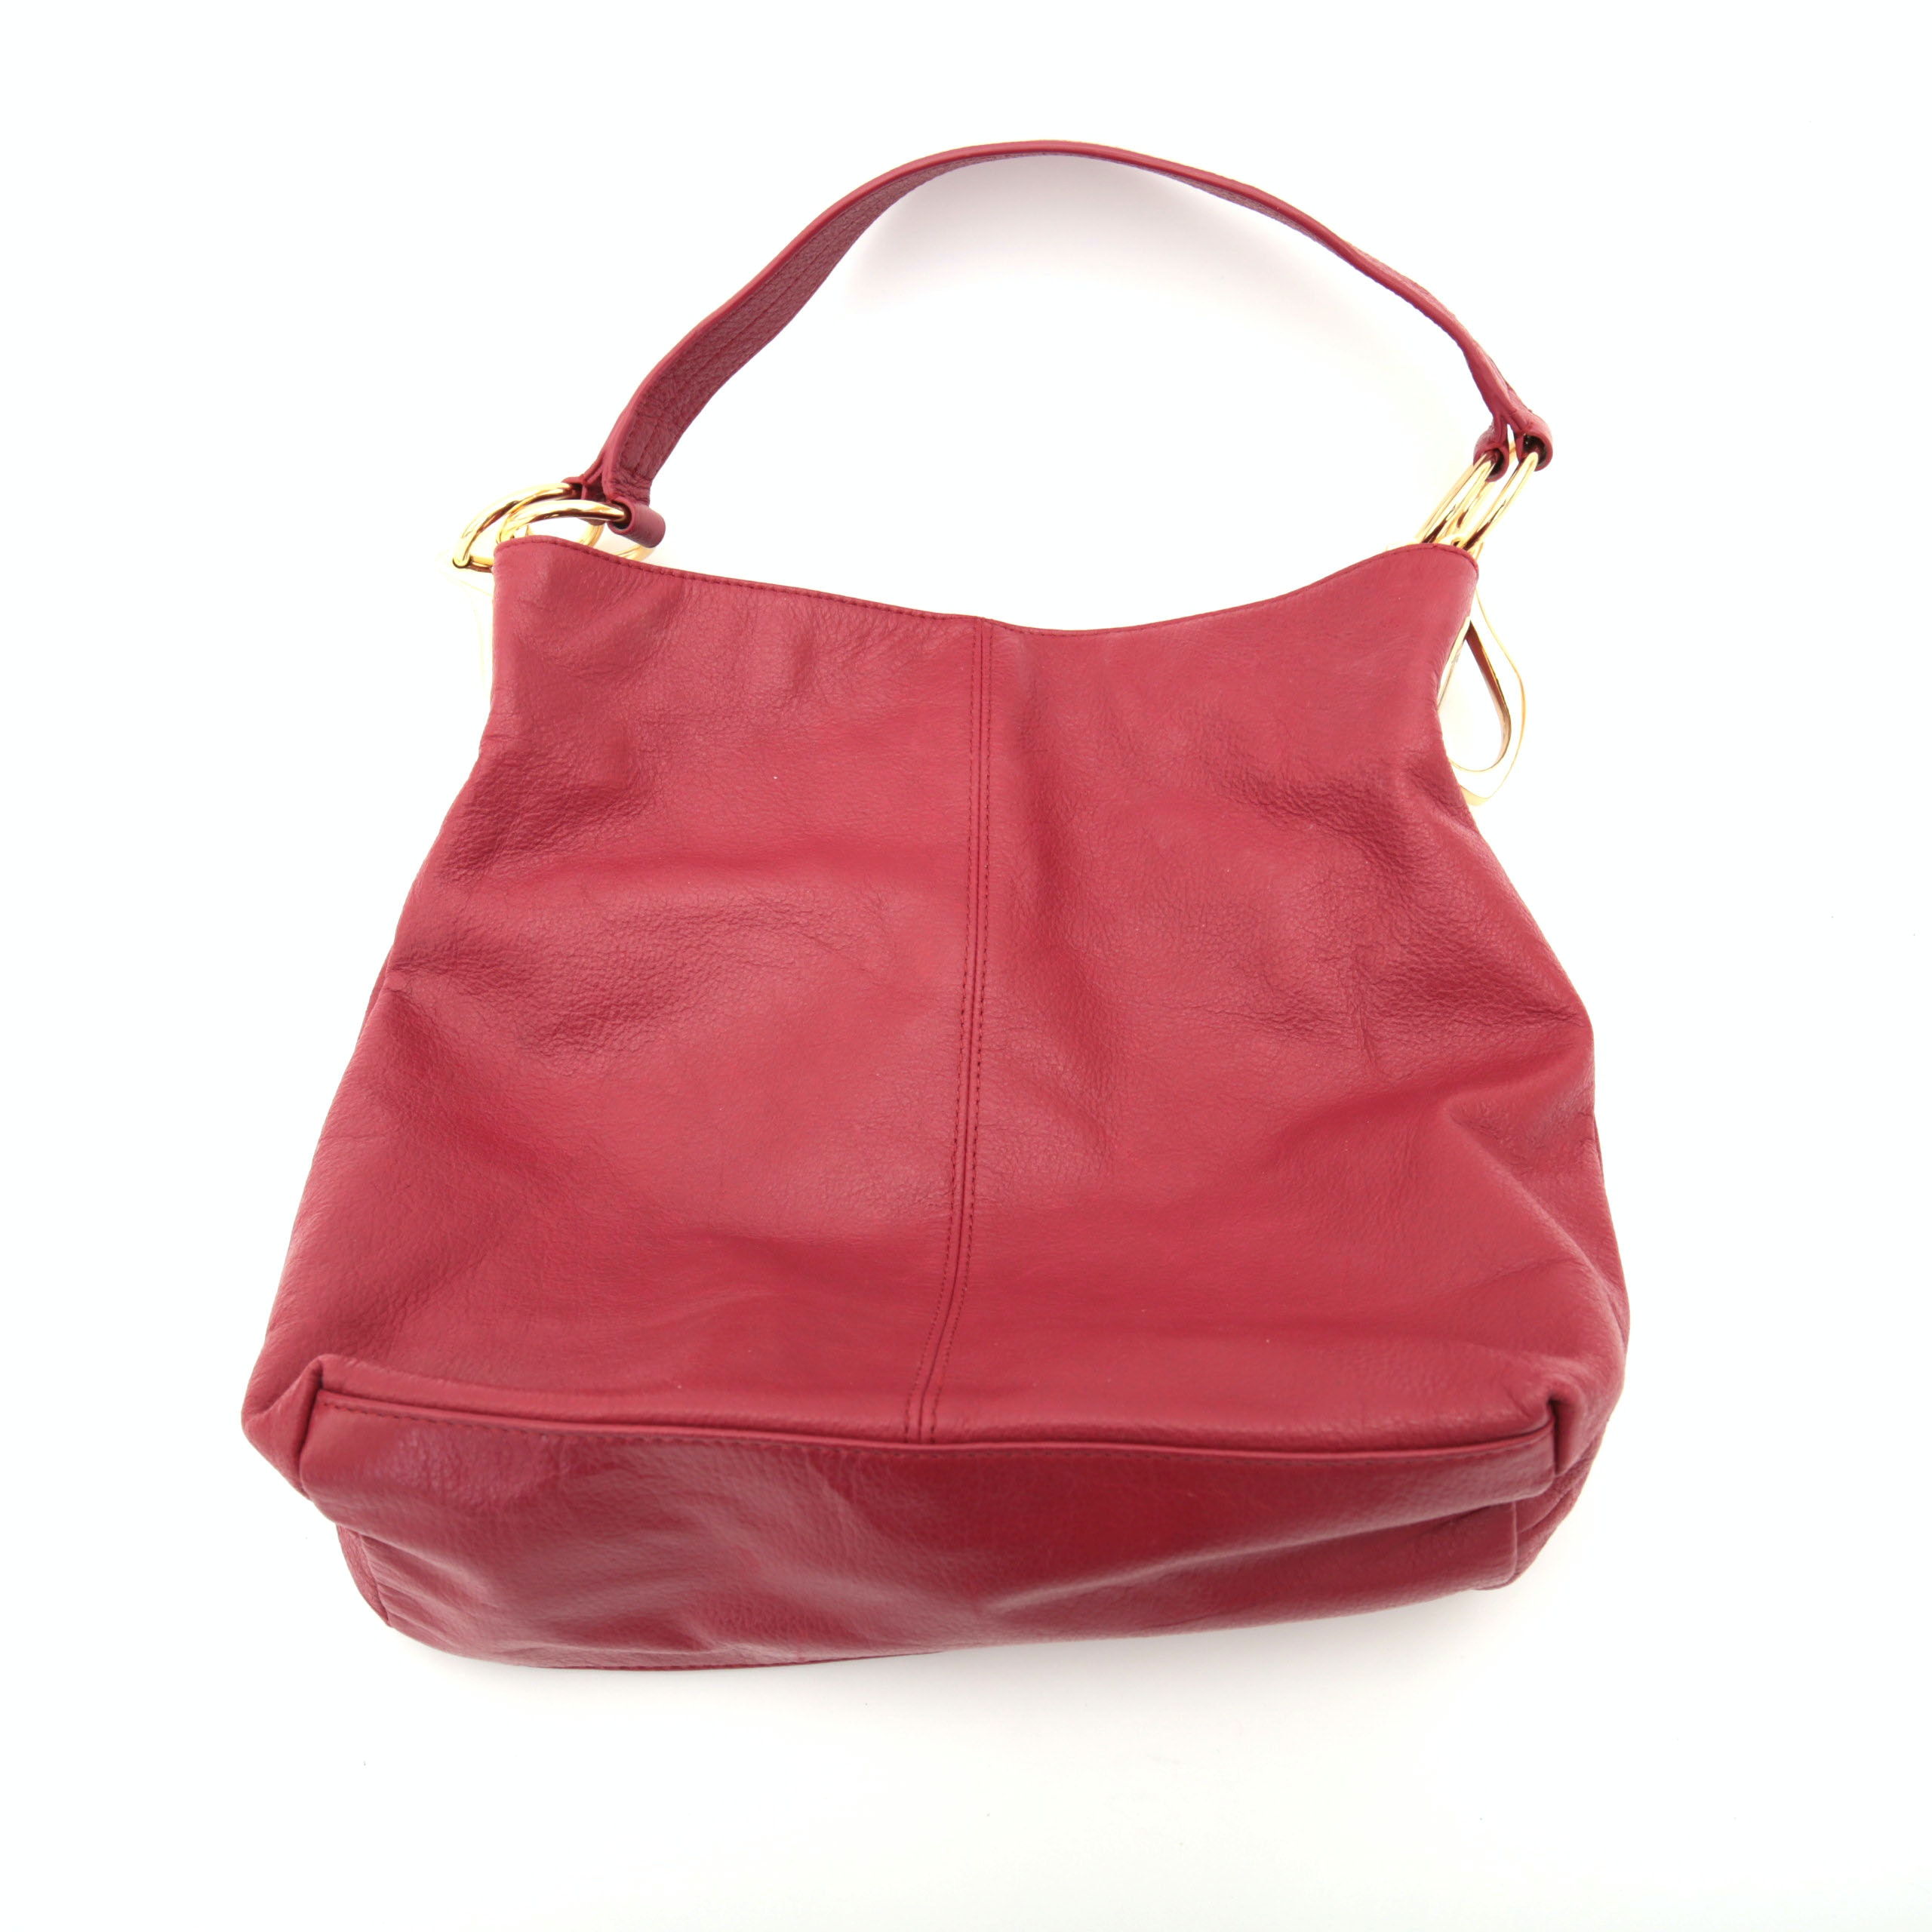 JPK Red Leather Tote Bag